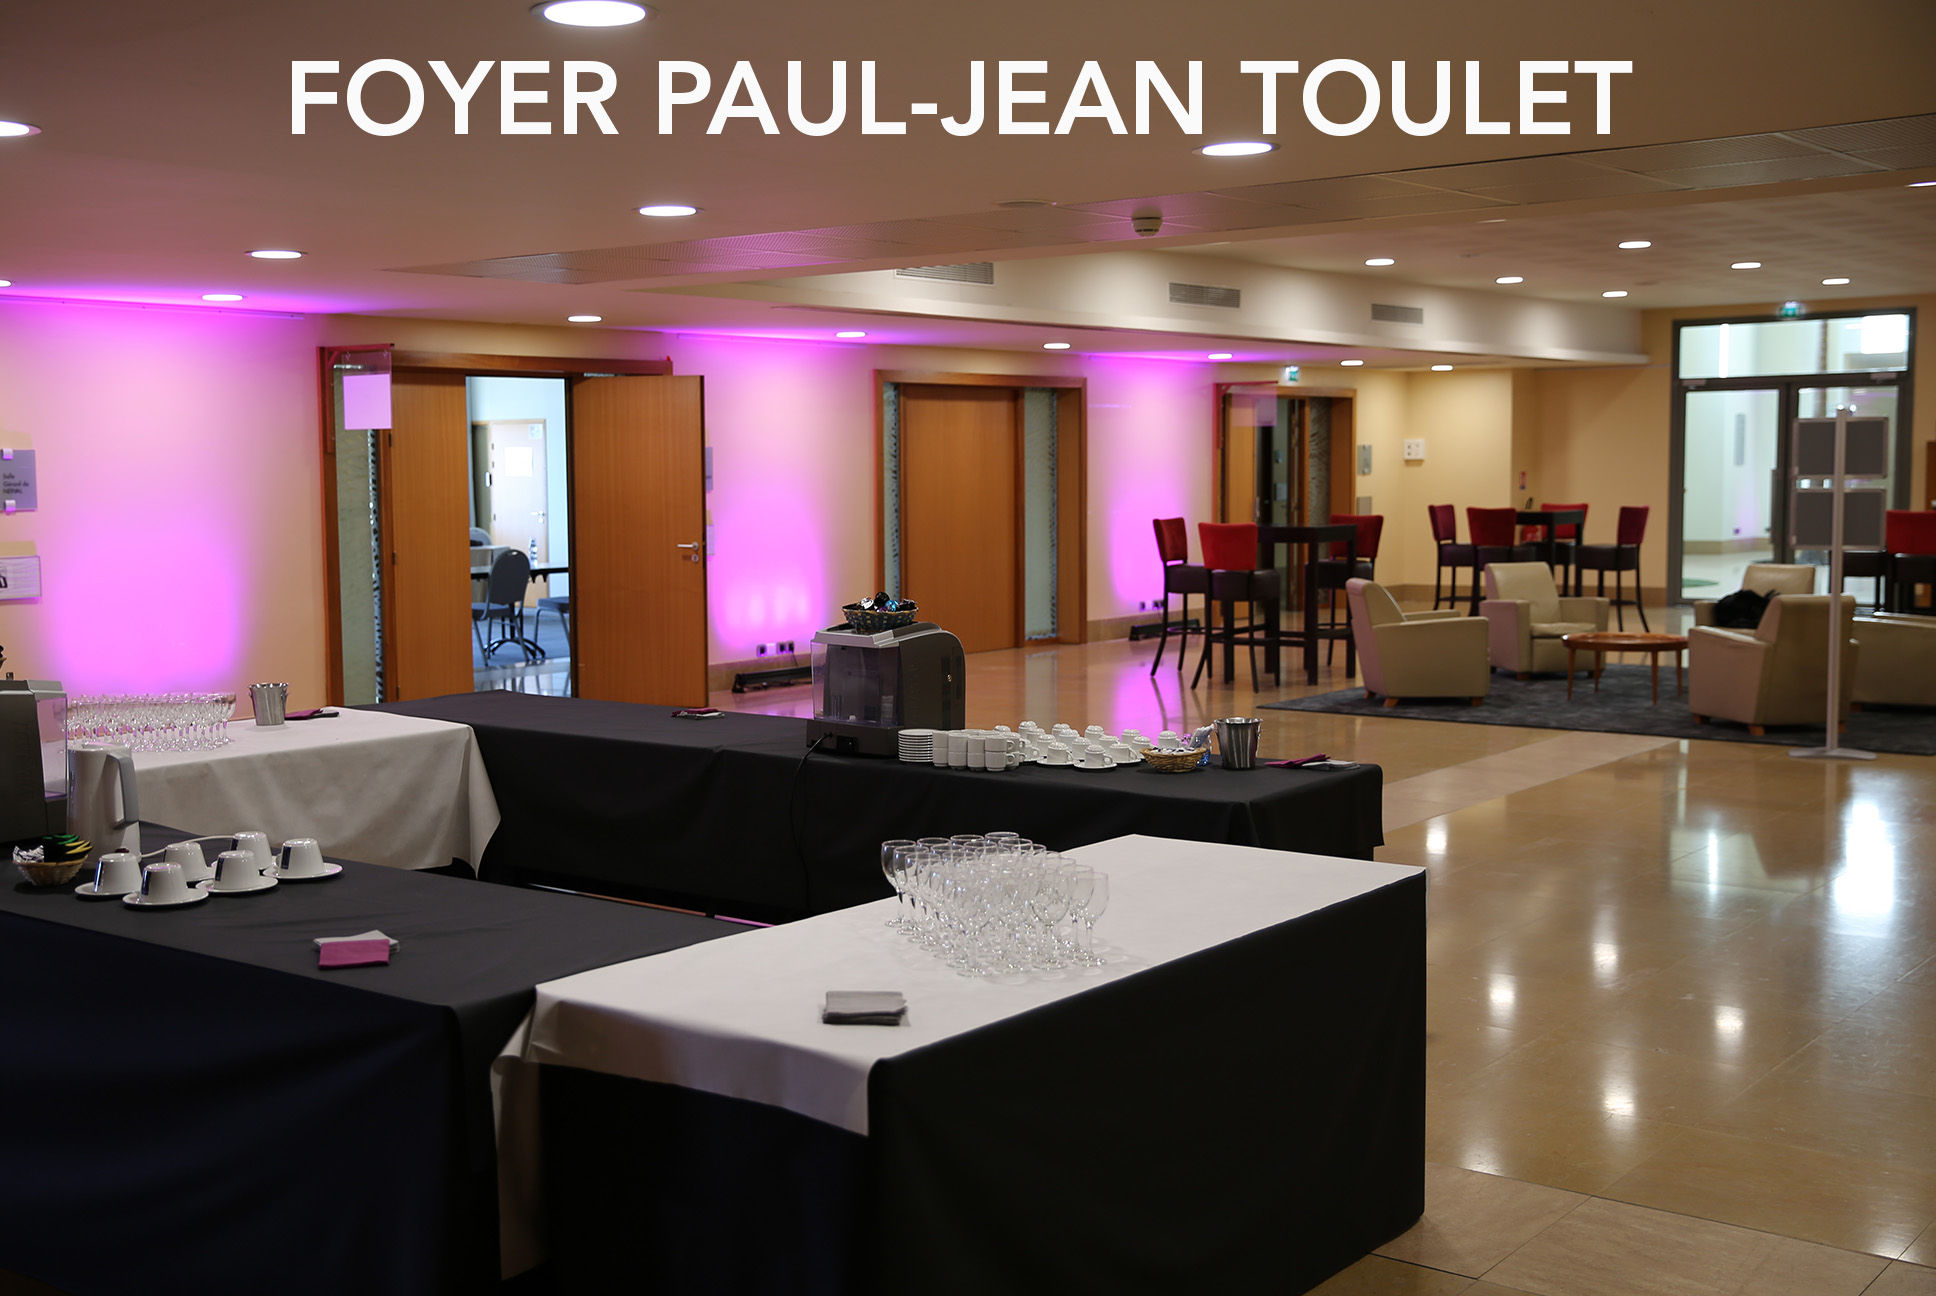 Foyer Paul-Jean Toulet Palais Beaumont Pau